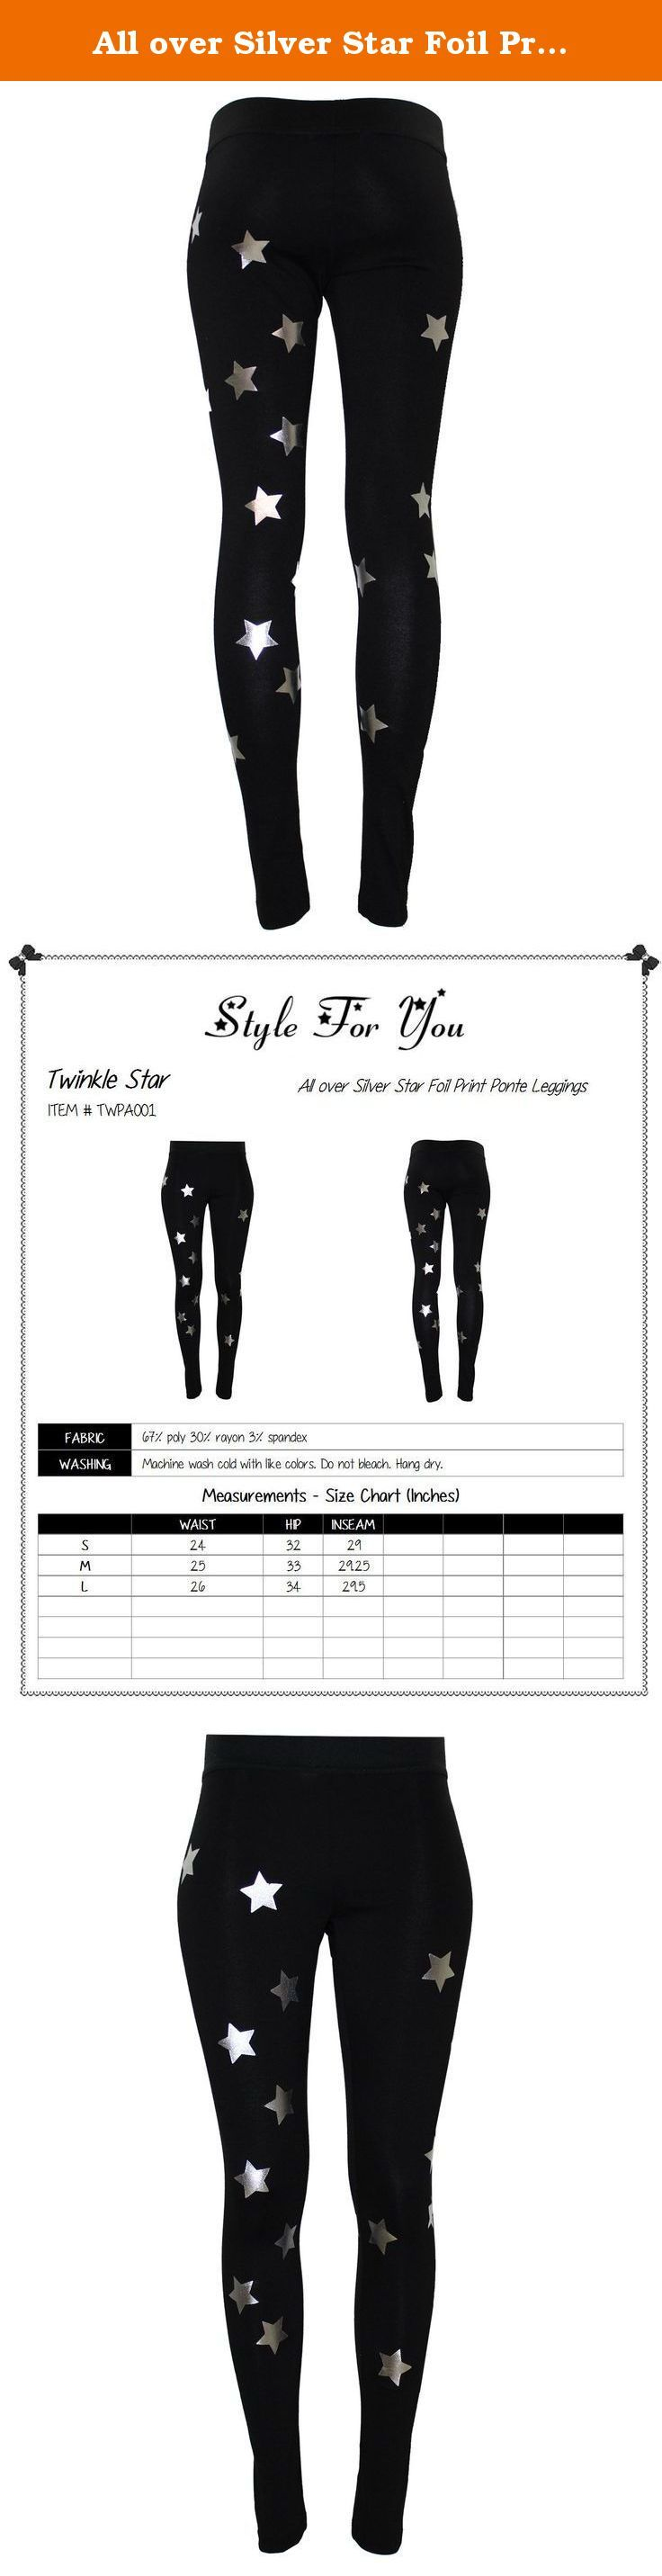 All over Silver Star Foil Print Ponte Leggings Black M Size. ★ Twinkle Star is a brand where we have collections of lovely stars! It's all about stars carrying wide range of categories such as tops, dresses, sweaters, cardigans, a must have one-of-a-kind items. Stay on top of the hottest styles and shop Style For You to be your own style and show your personality! Please also check out our brand Ladies' Code . .